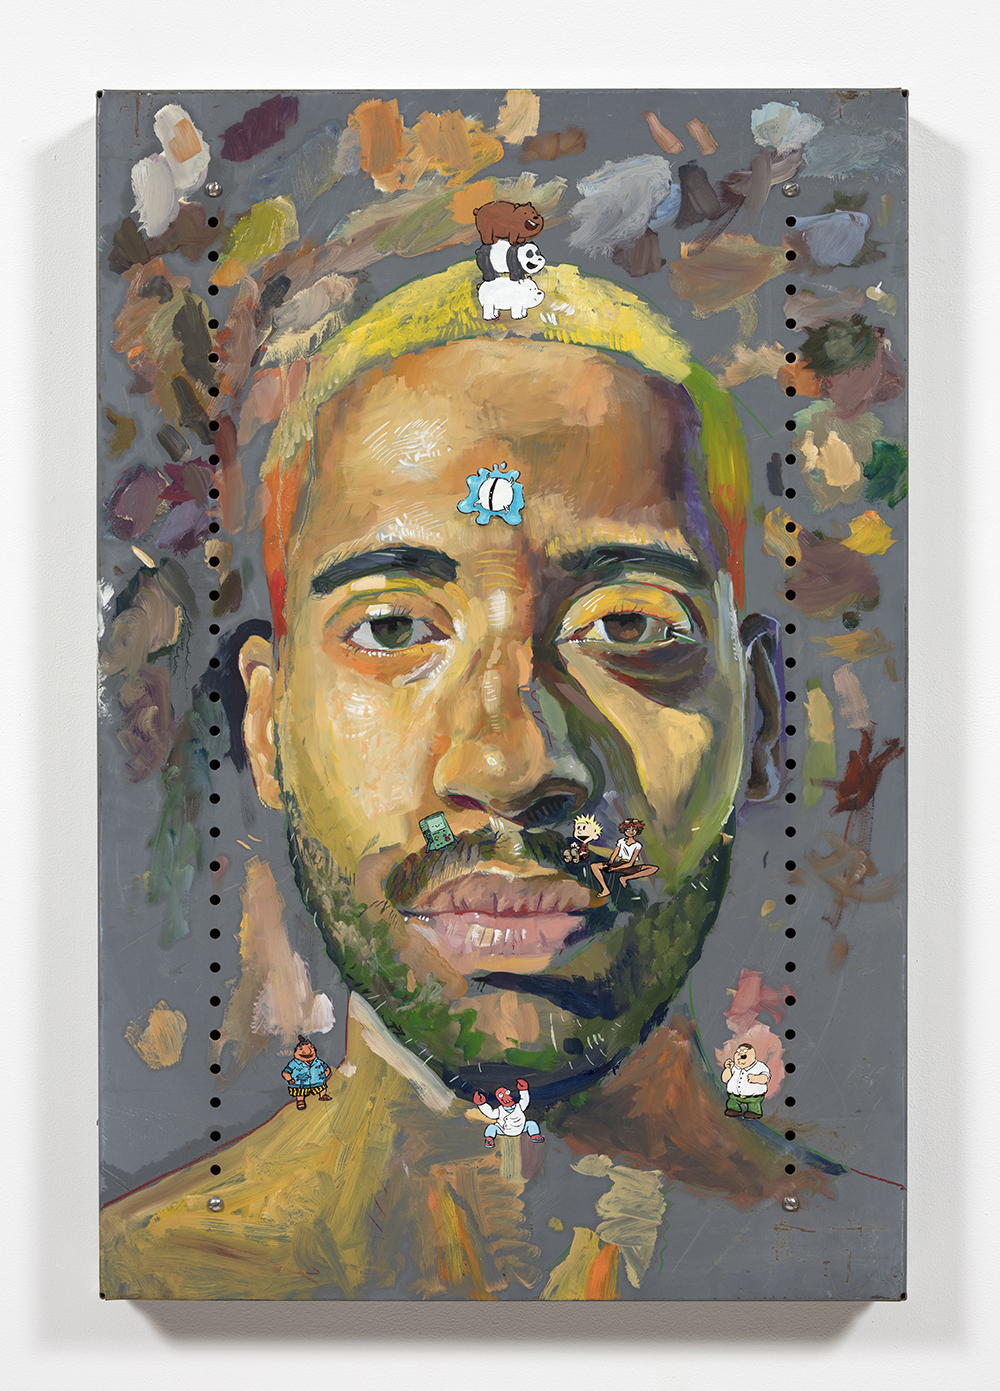 Yung Jake. <em>Untitled Self-Portrait 5 (grizzly, panda, ice bear, one-one, b-mo, calvin, edward, tito, peter and zoidberg)</em>, 2020. Oil on found metal; powder-coated steel support, 36 x 24 inches  (91.4 x 61 cm)